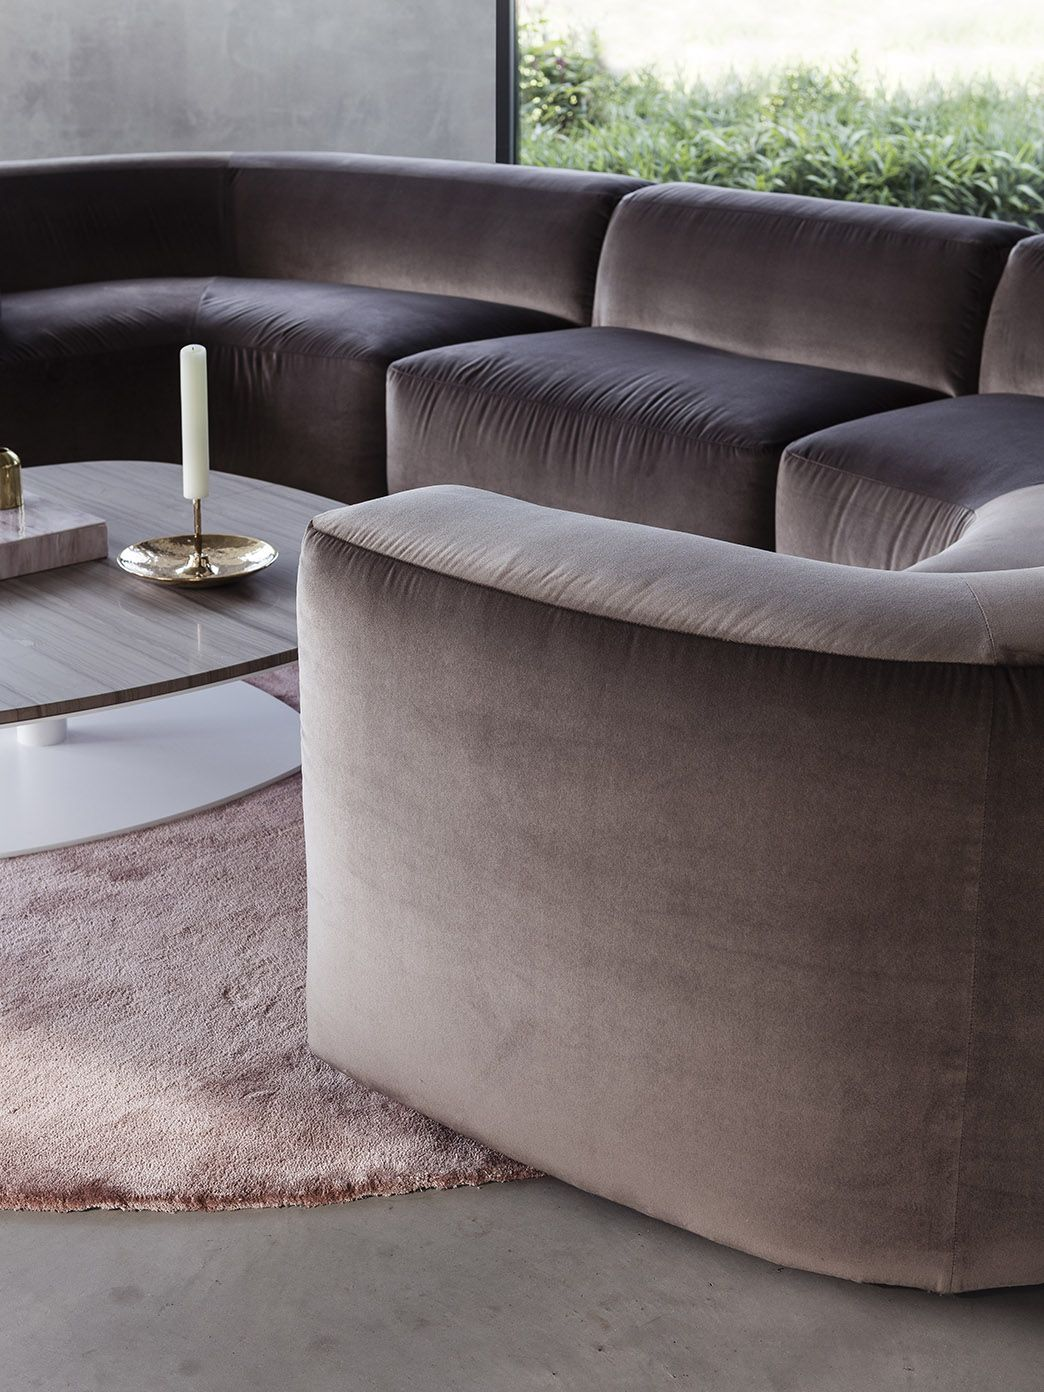 bo sofa belle armchair and kek coffee table and klink side table